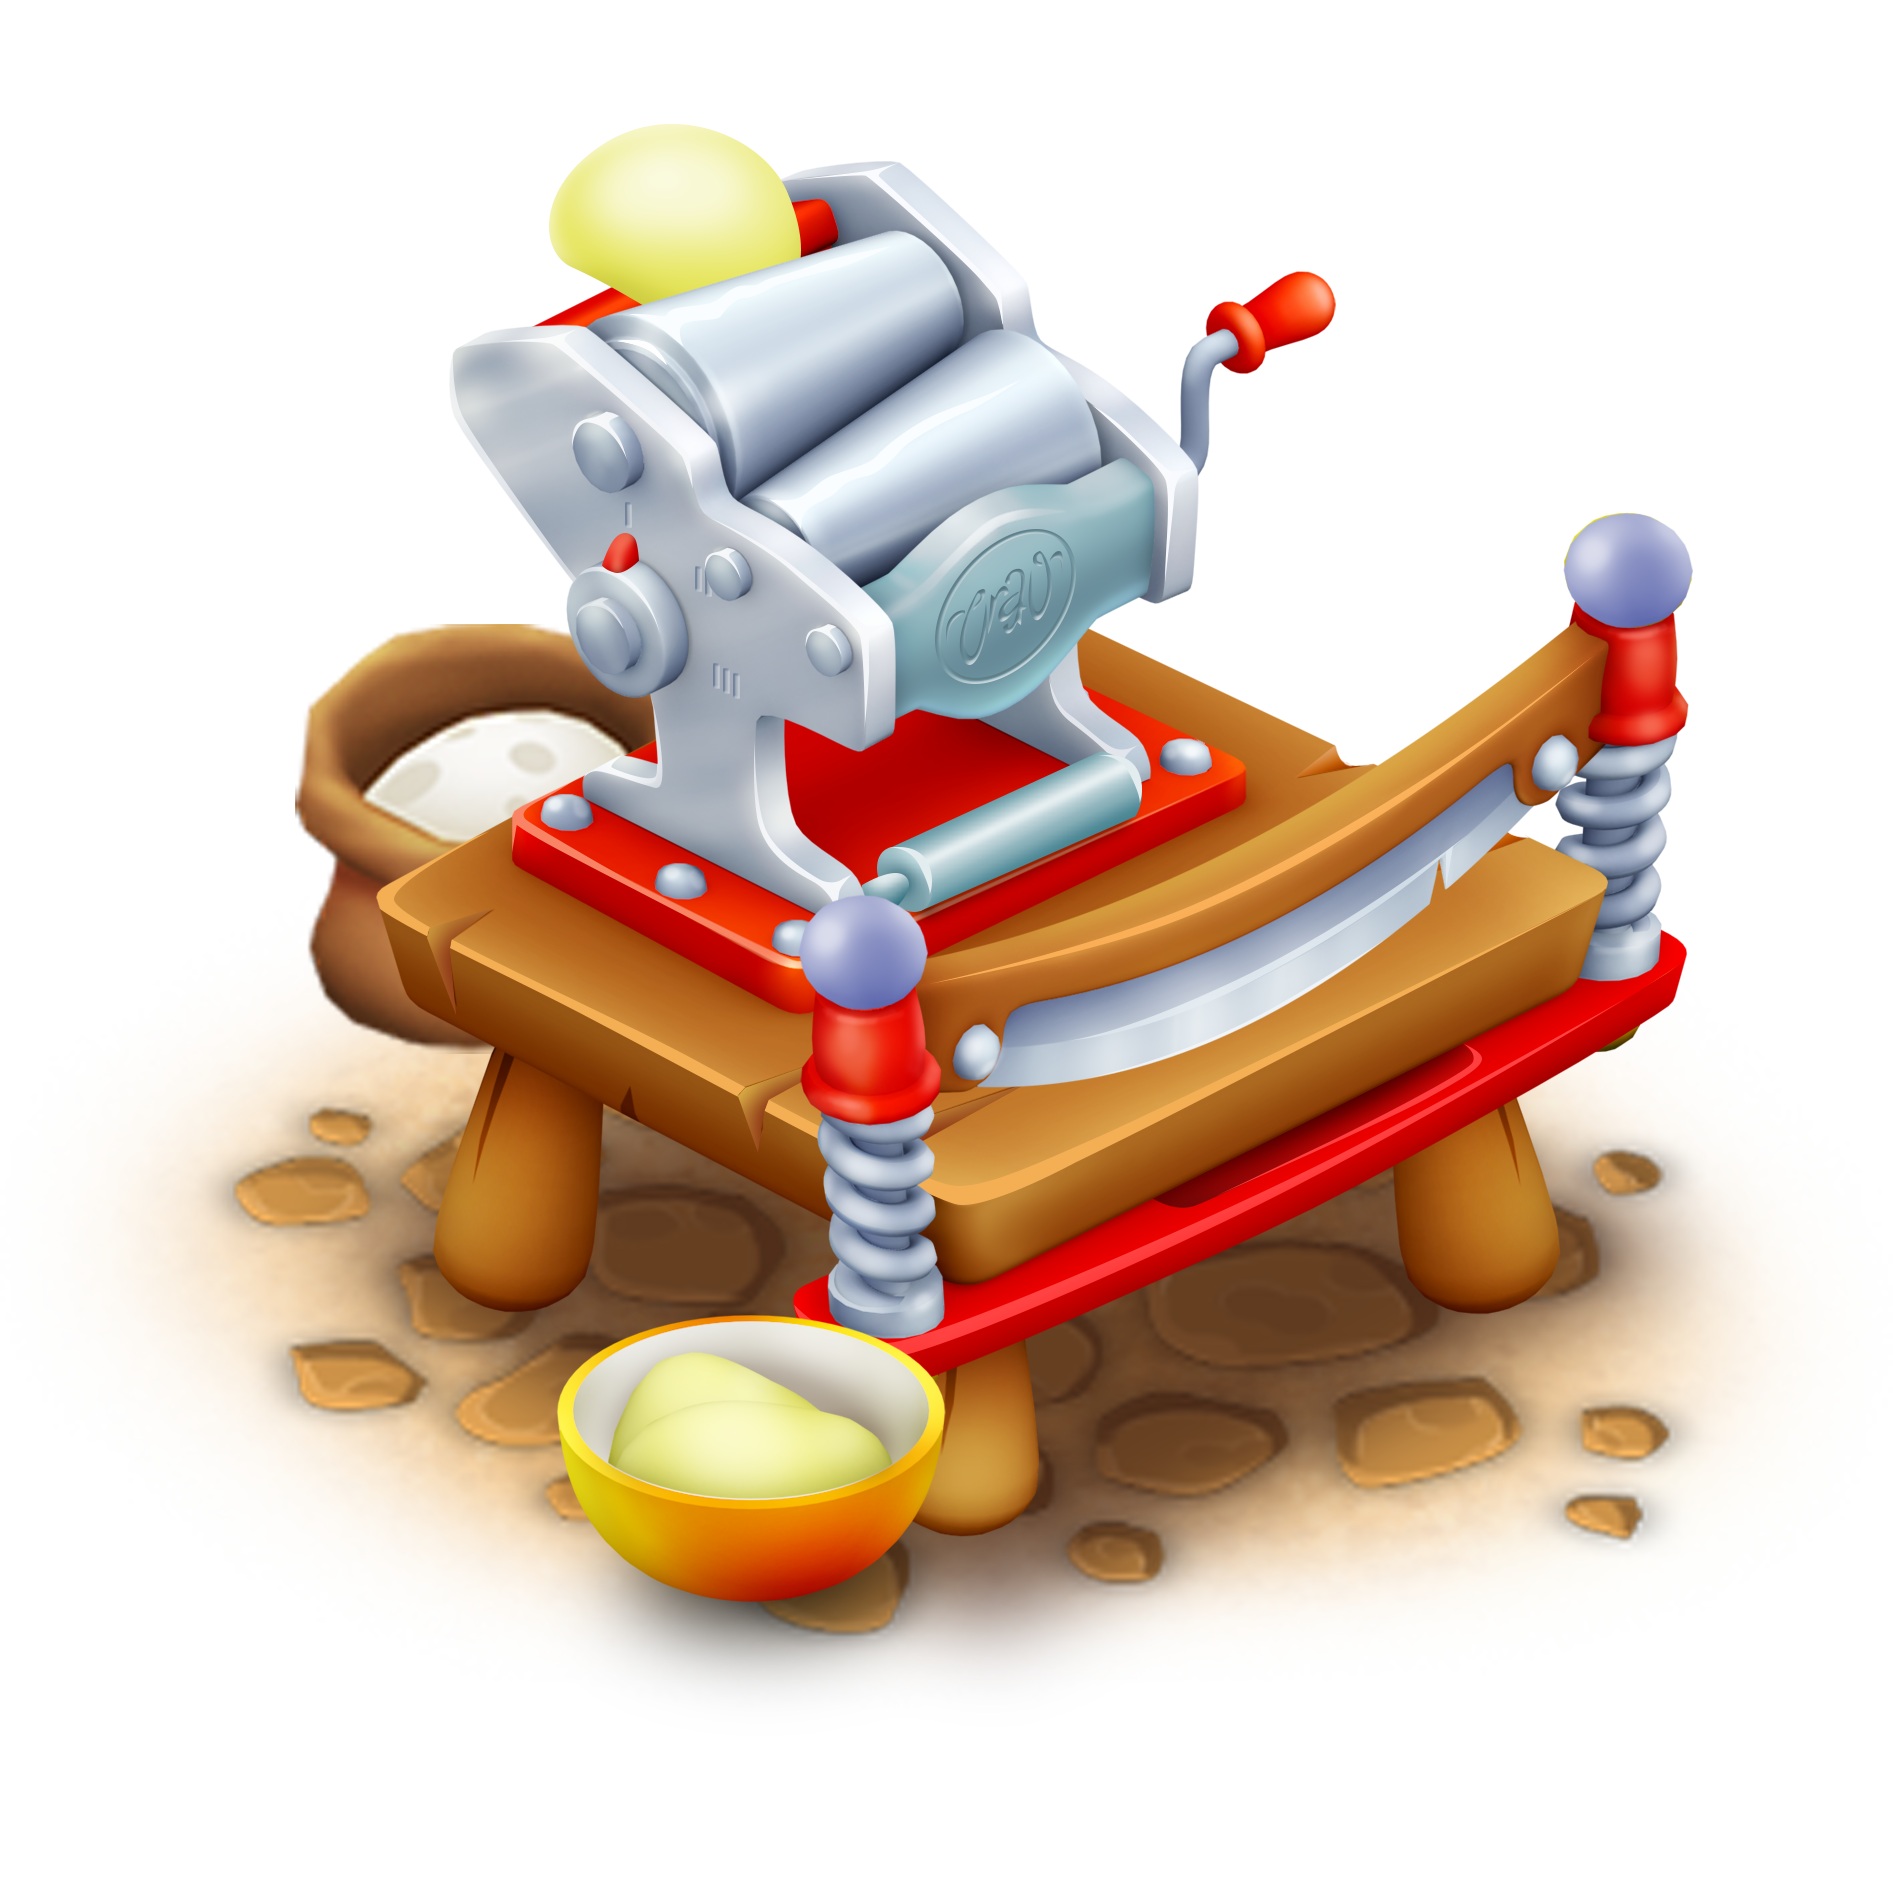 Pasta maker hay day. Noodles clipart spagetti